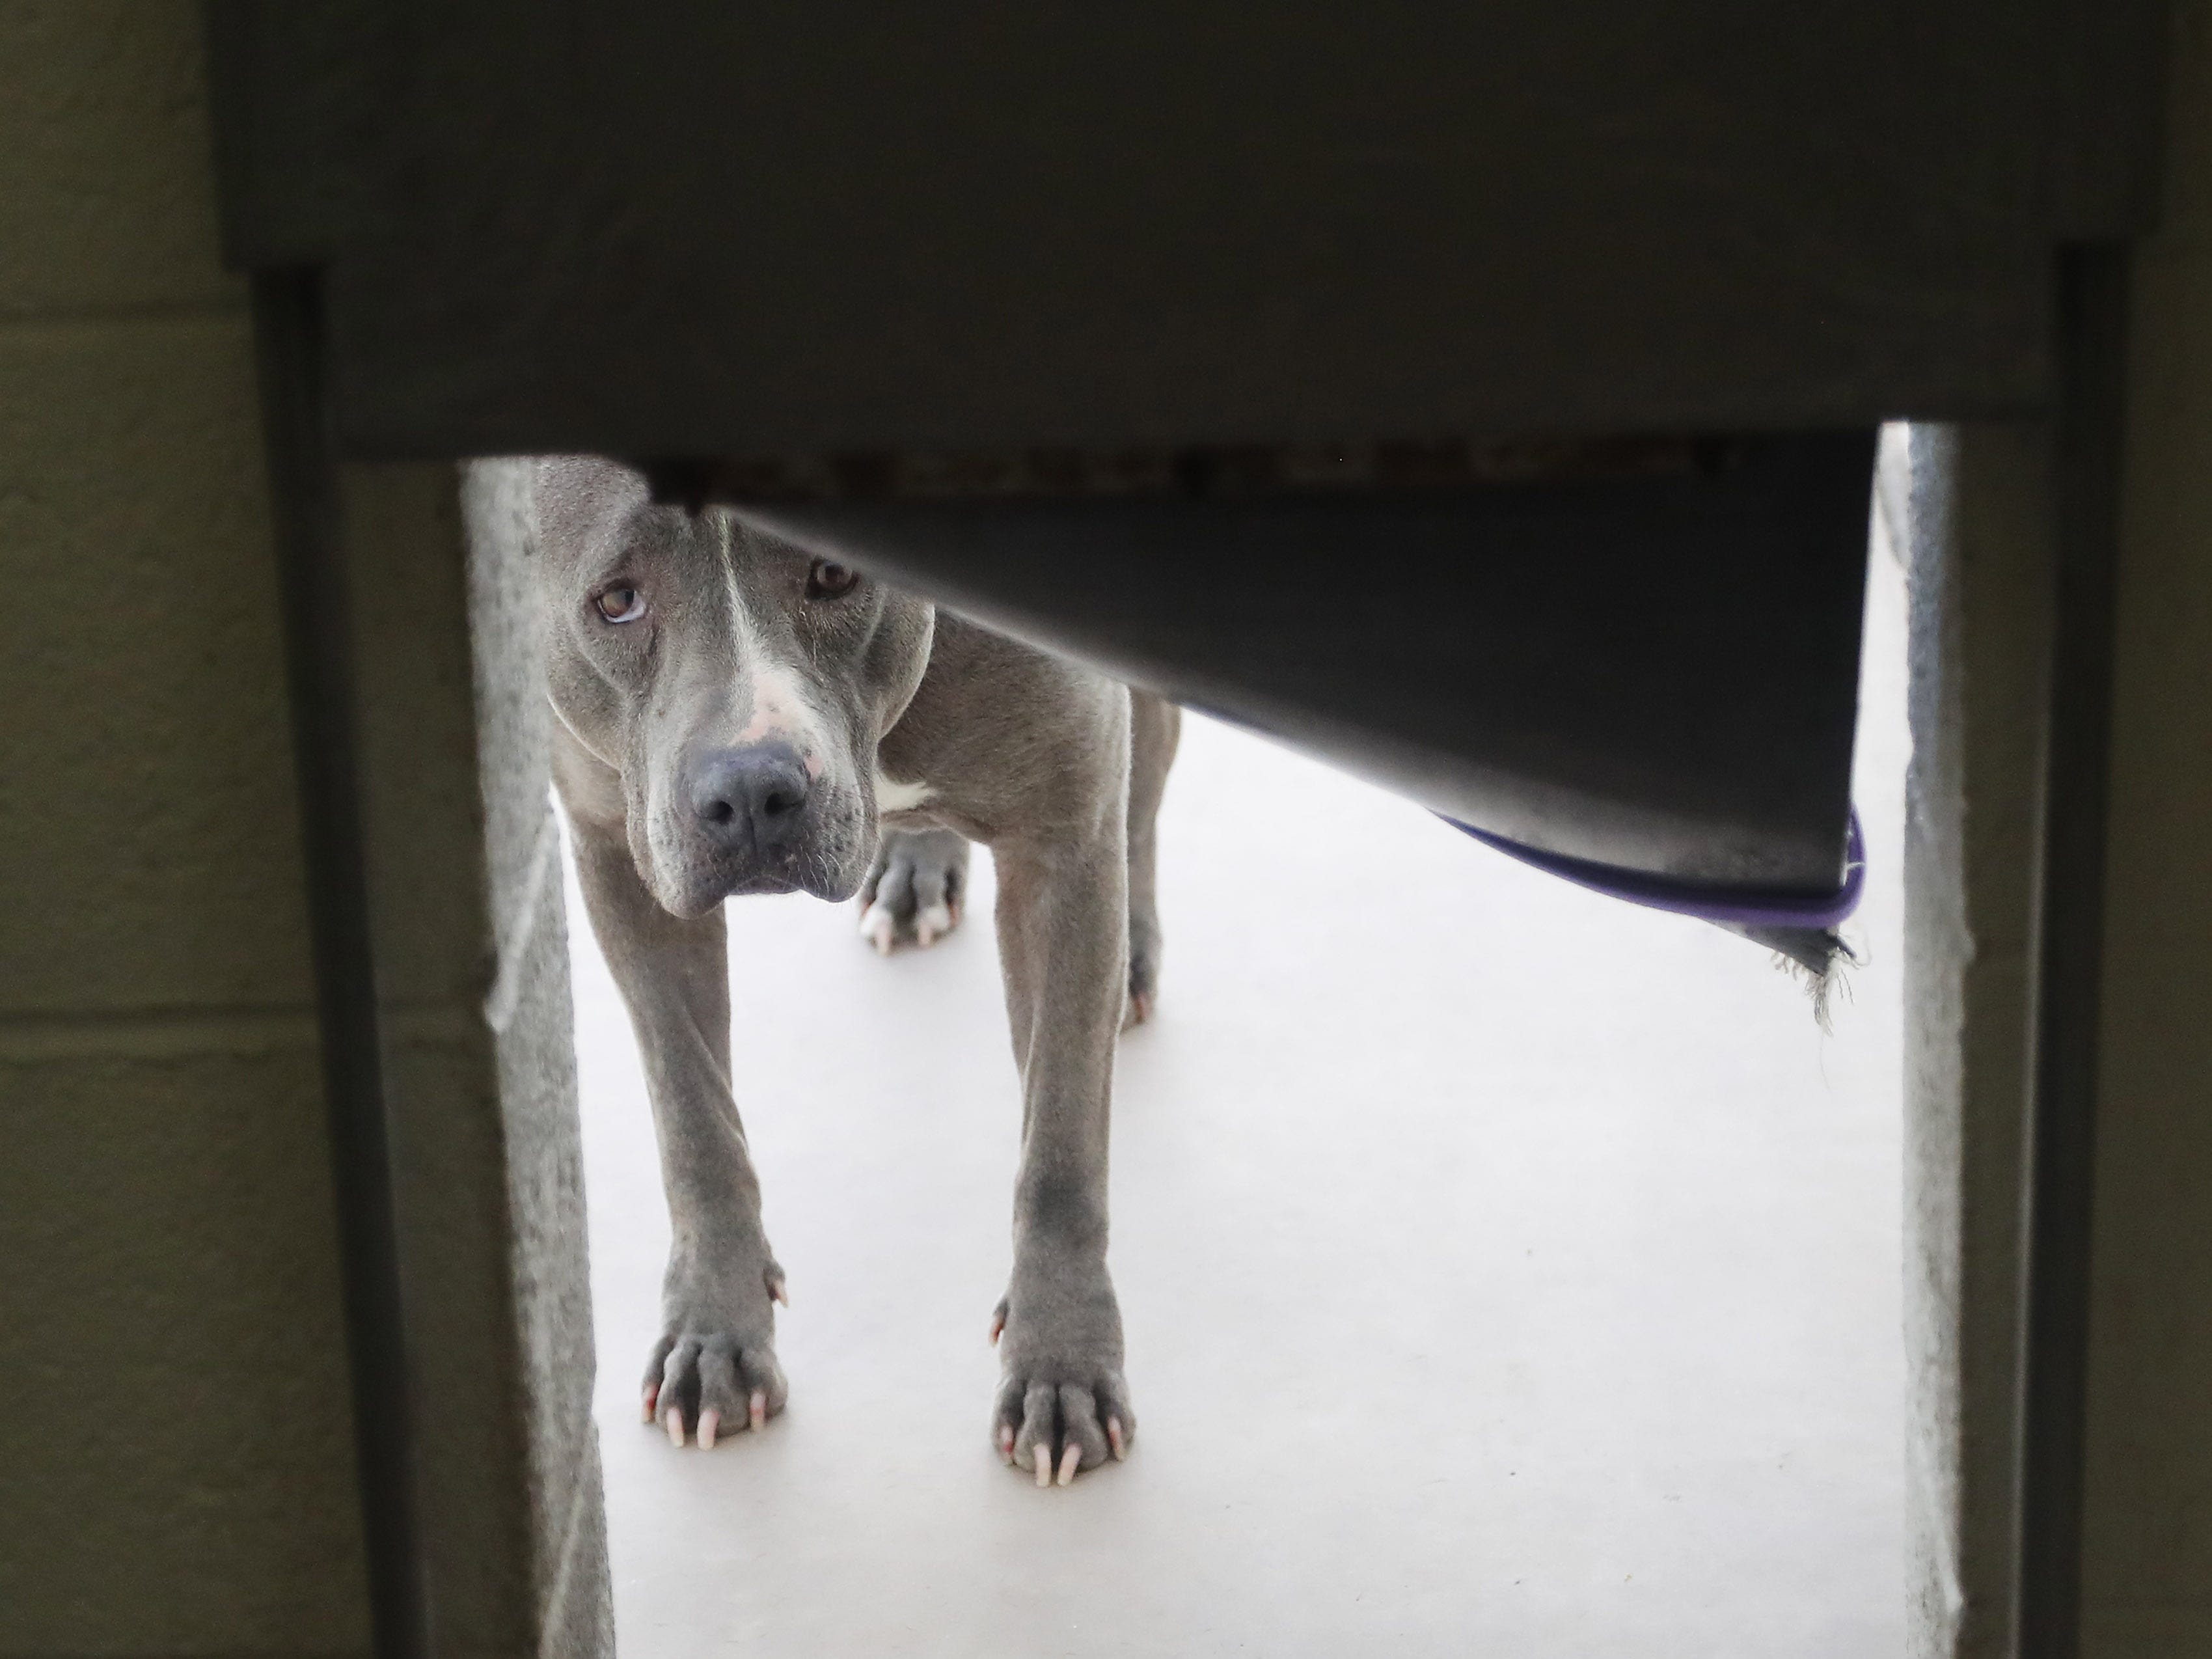 Babette, an American pit bull terrier, waits to be adopted at the Arizona Humane Society in Phoenix on April 1, 2019. More than 8,000 dogs and cats have been surrendered in Maricopa County since the start of the year.